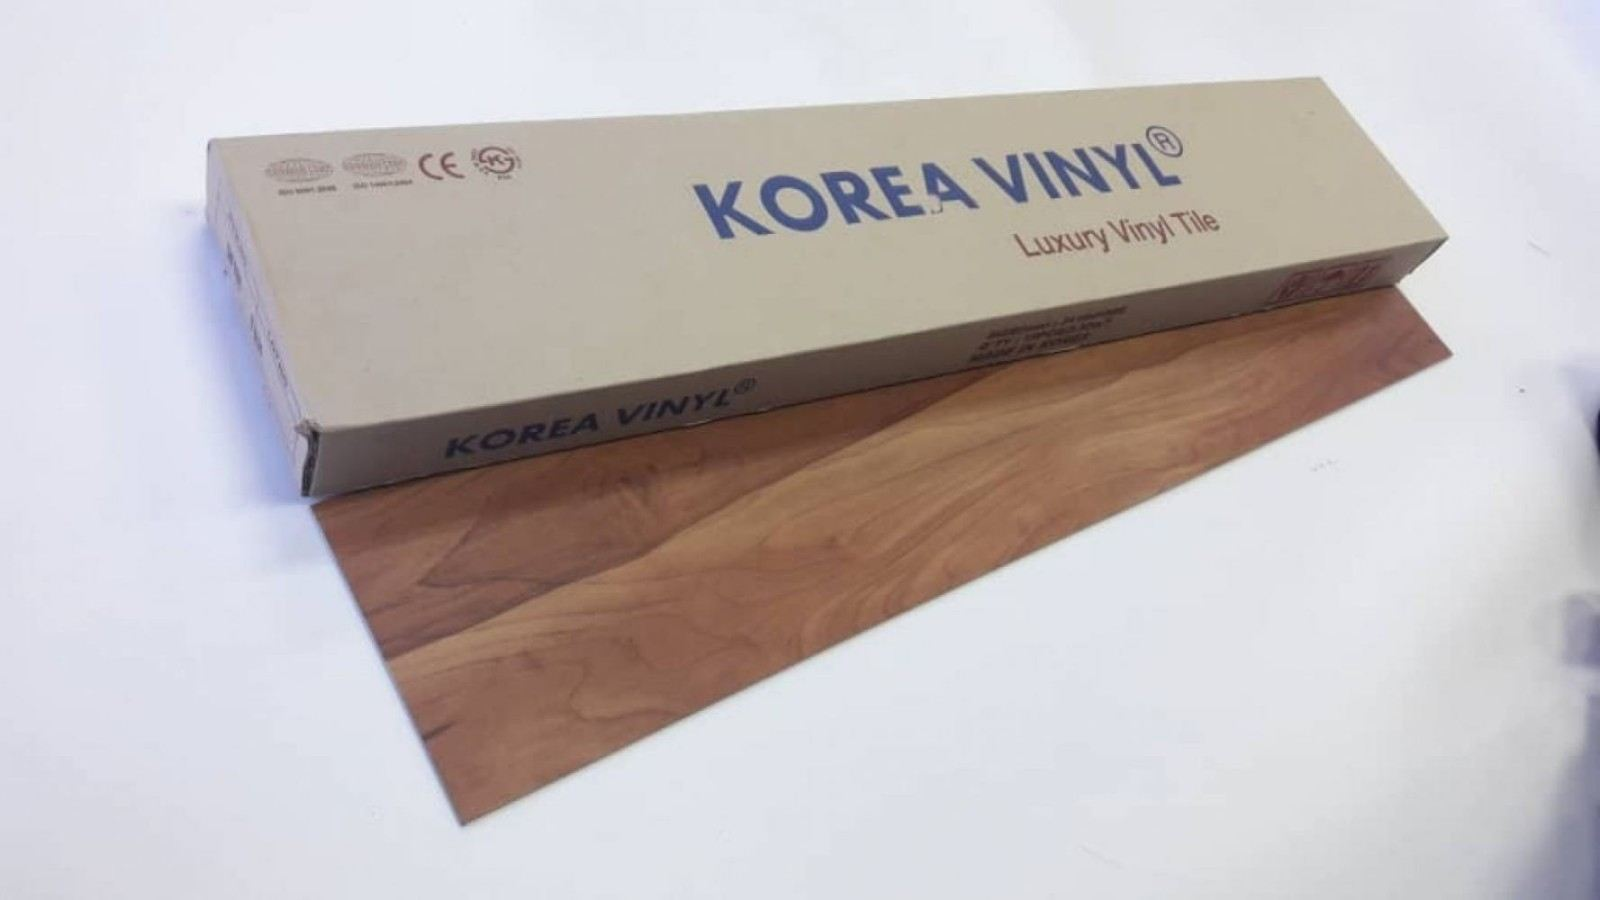 (KV-1921) Korea Luxury Vinyl Flooring 3mm - Cinnamon Cherry